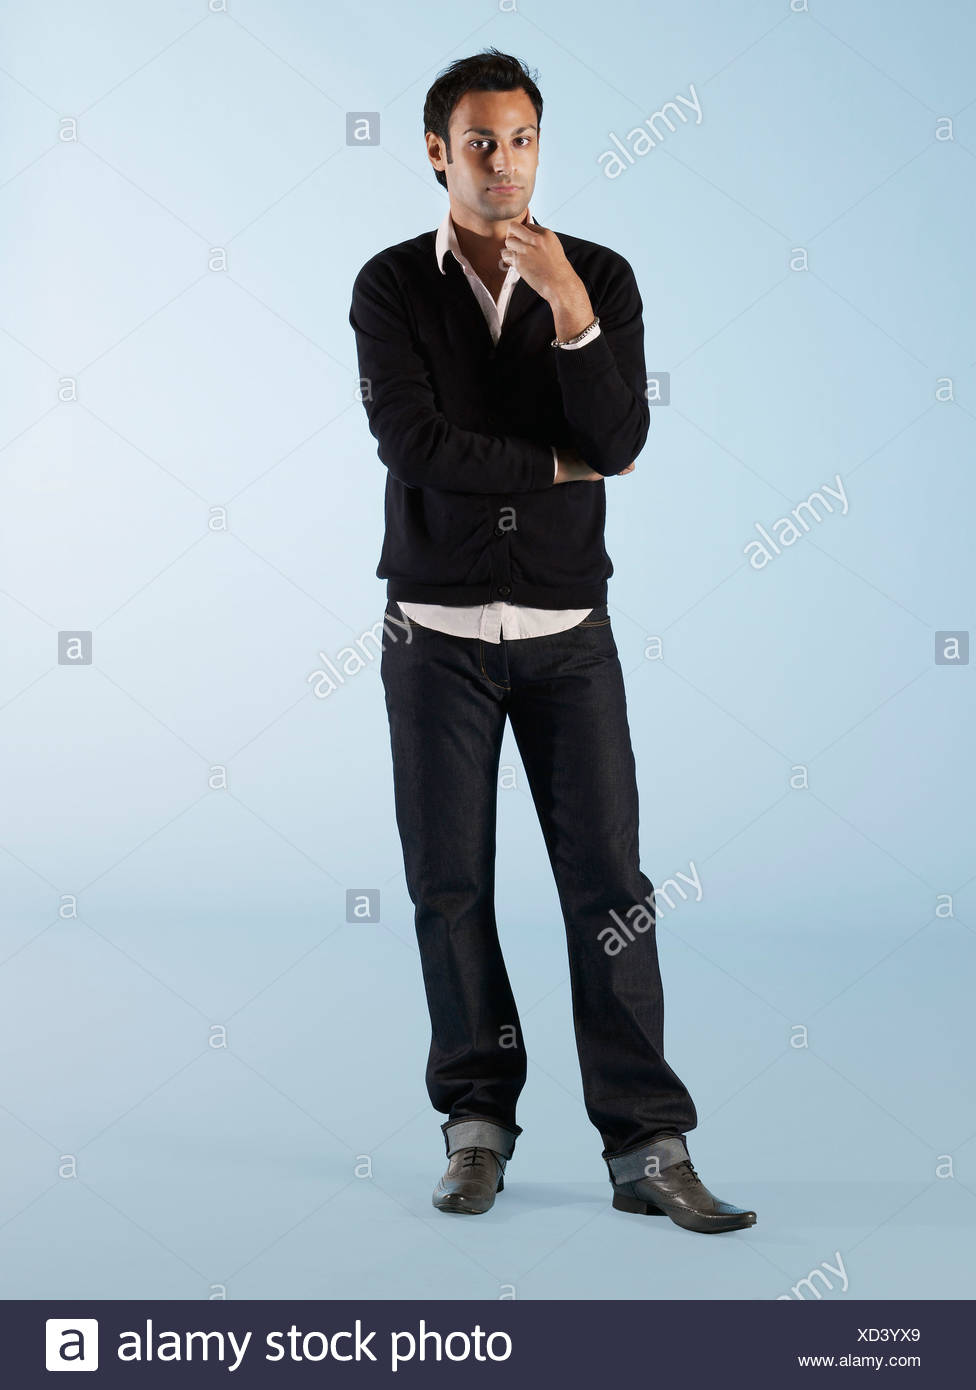 Mid adult man with hand on chin - Stock Image